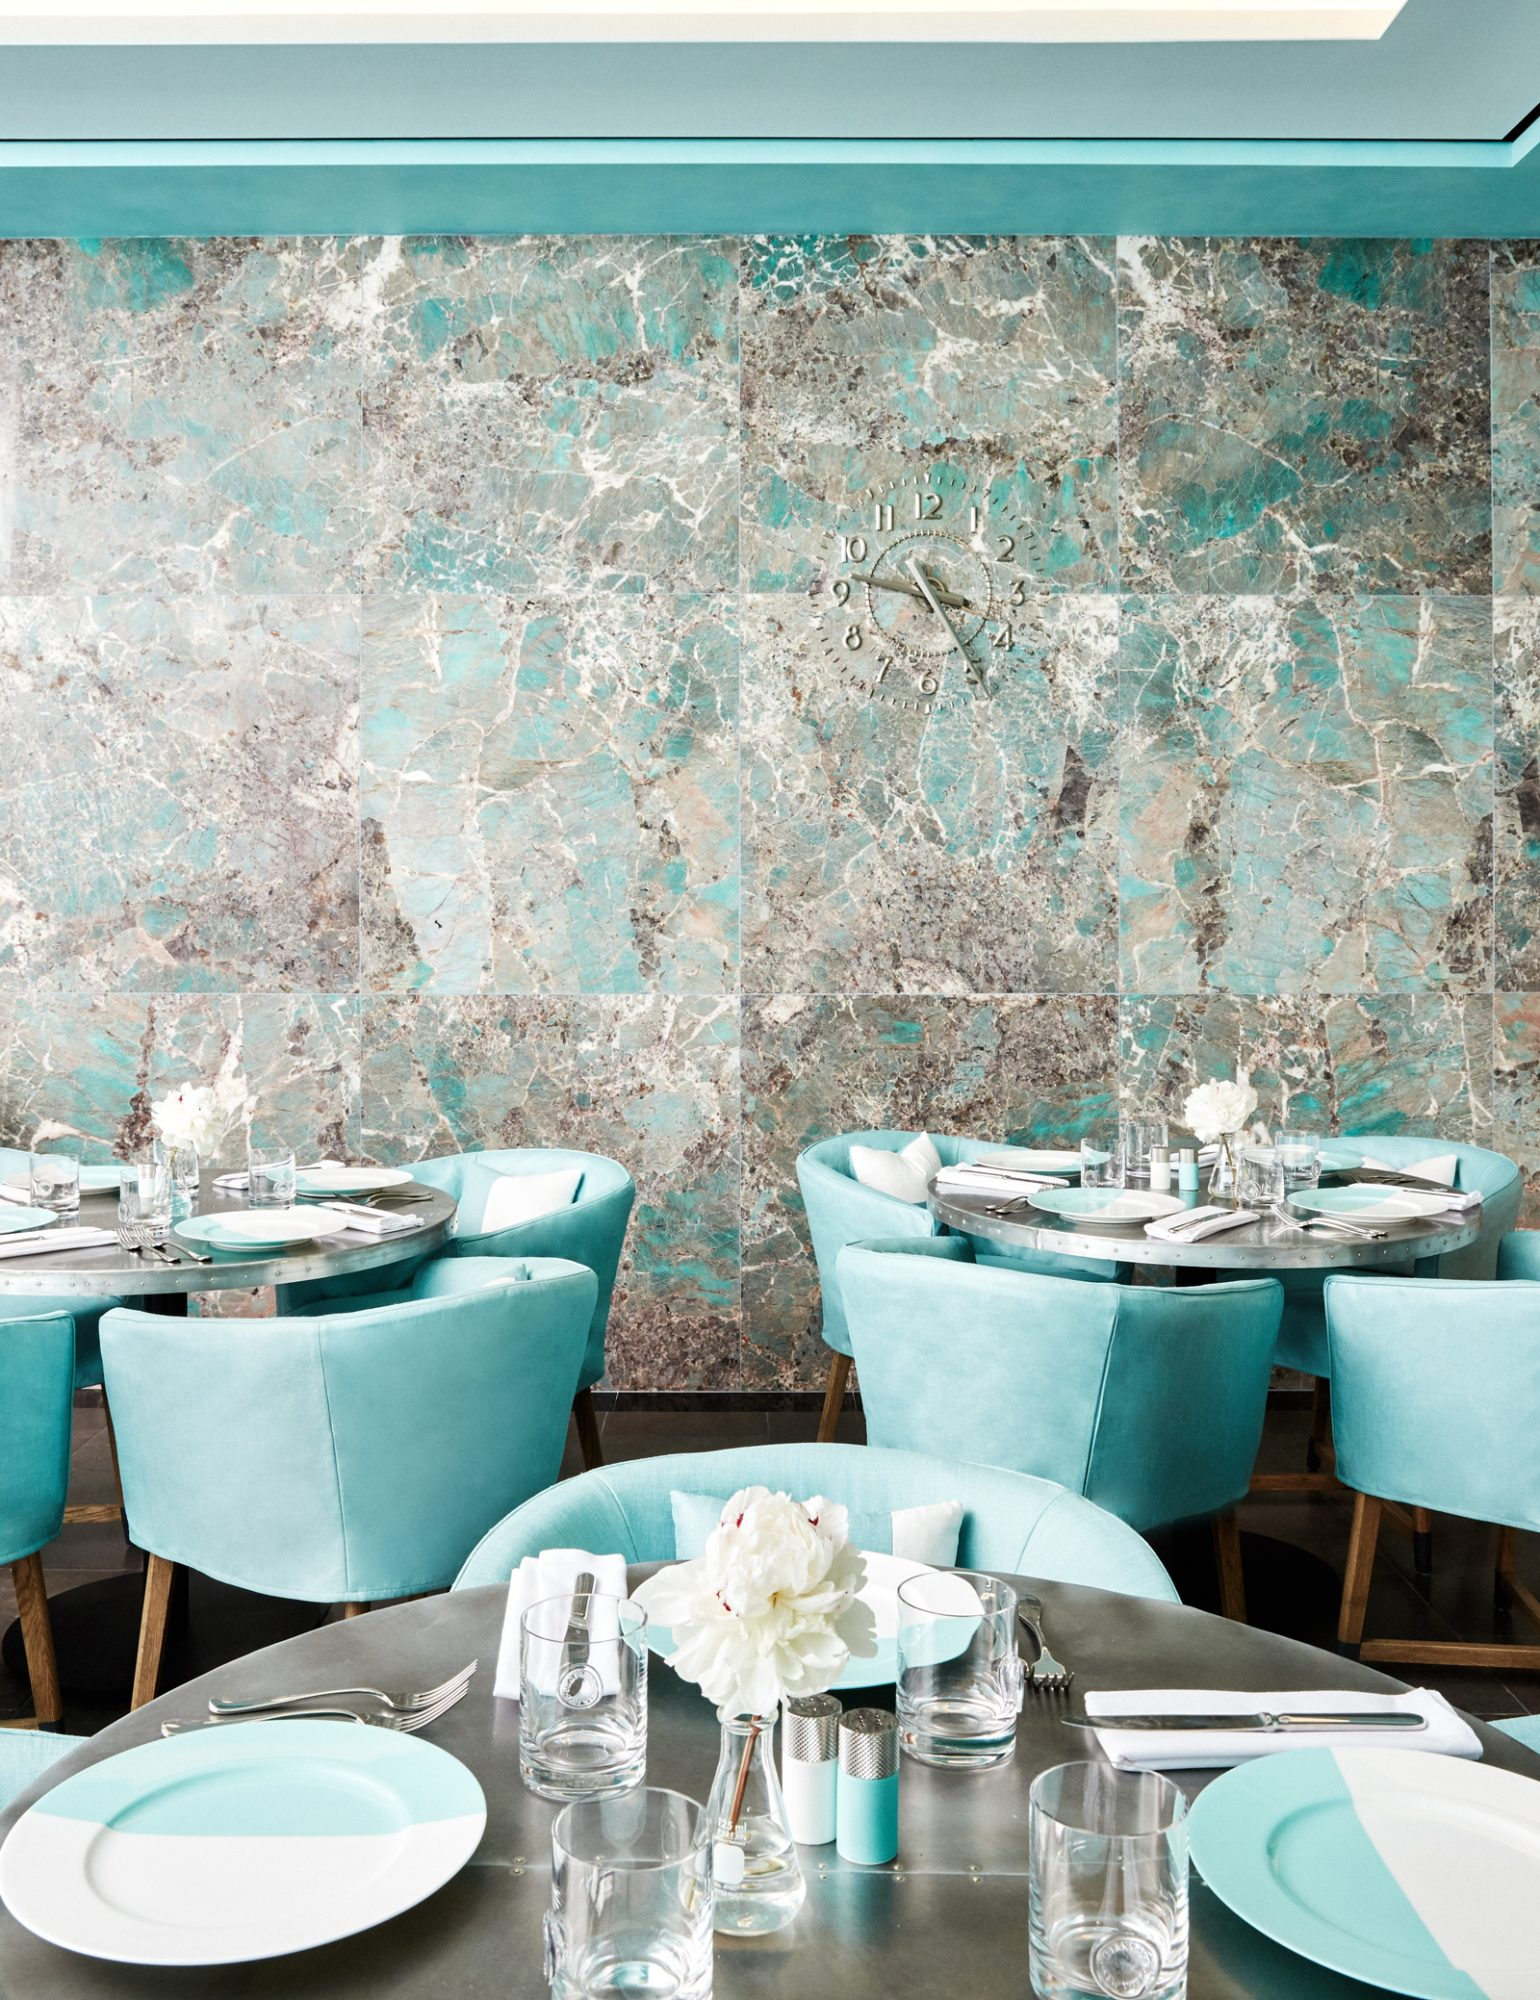 The café is decorated in the iconic Tiffany blue.